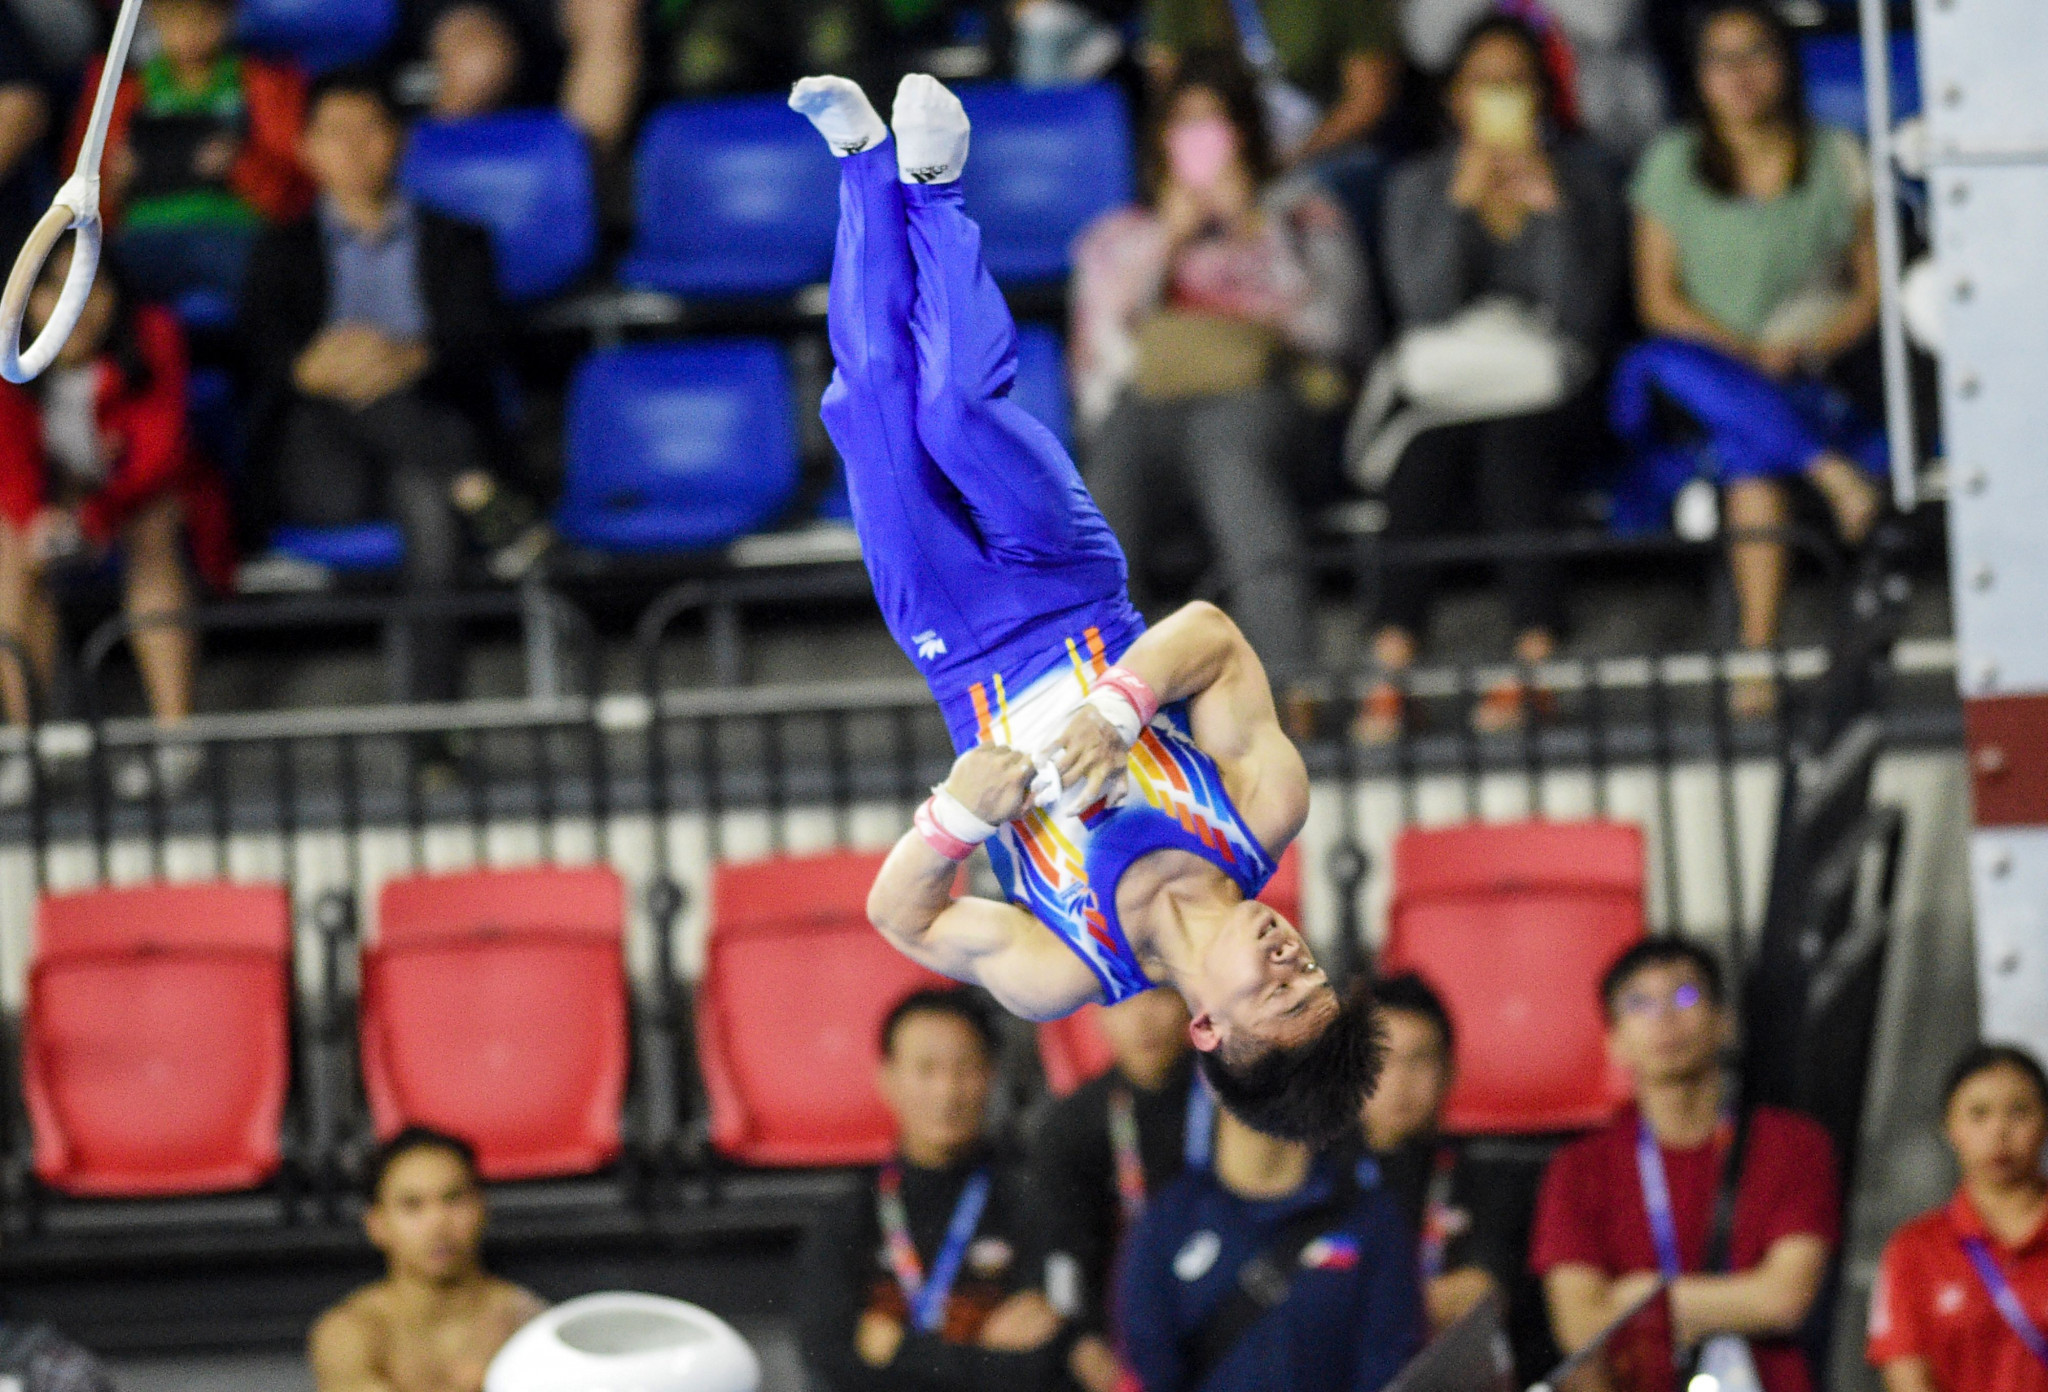 Philippines on top at Southeast Asian Games as Typhoon Kammuri forces rescheduling